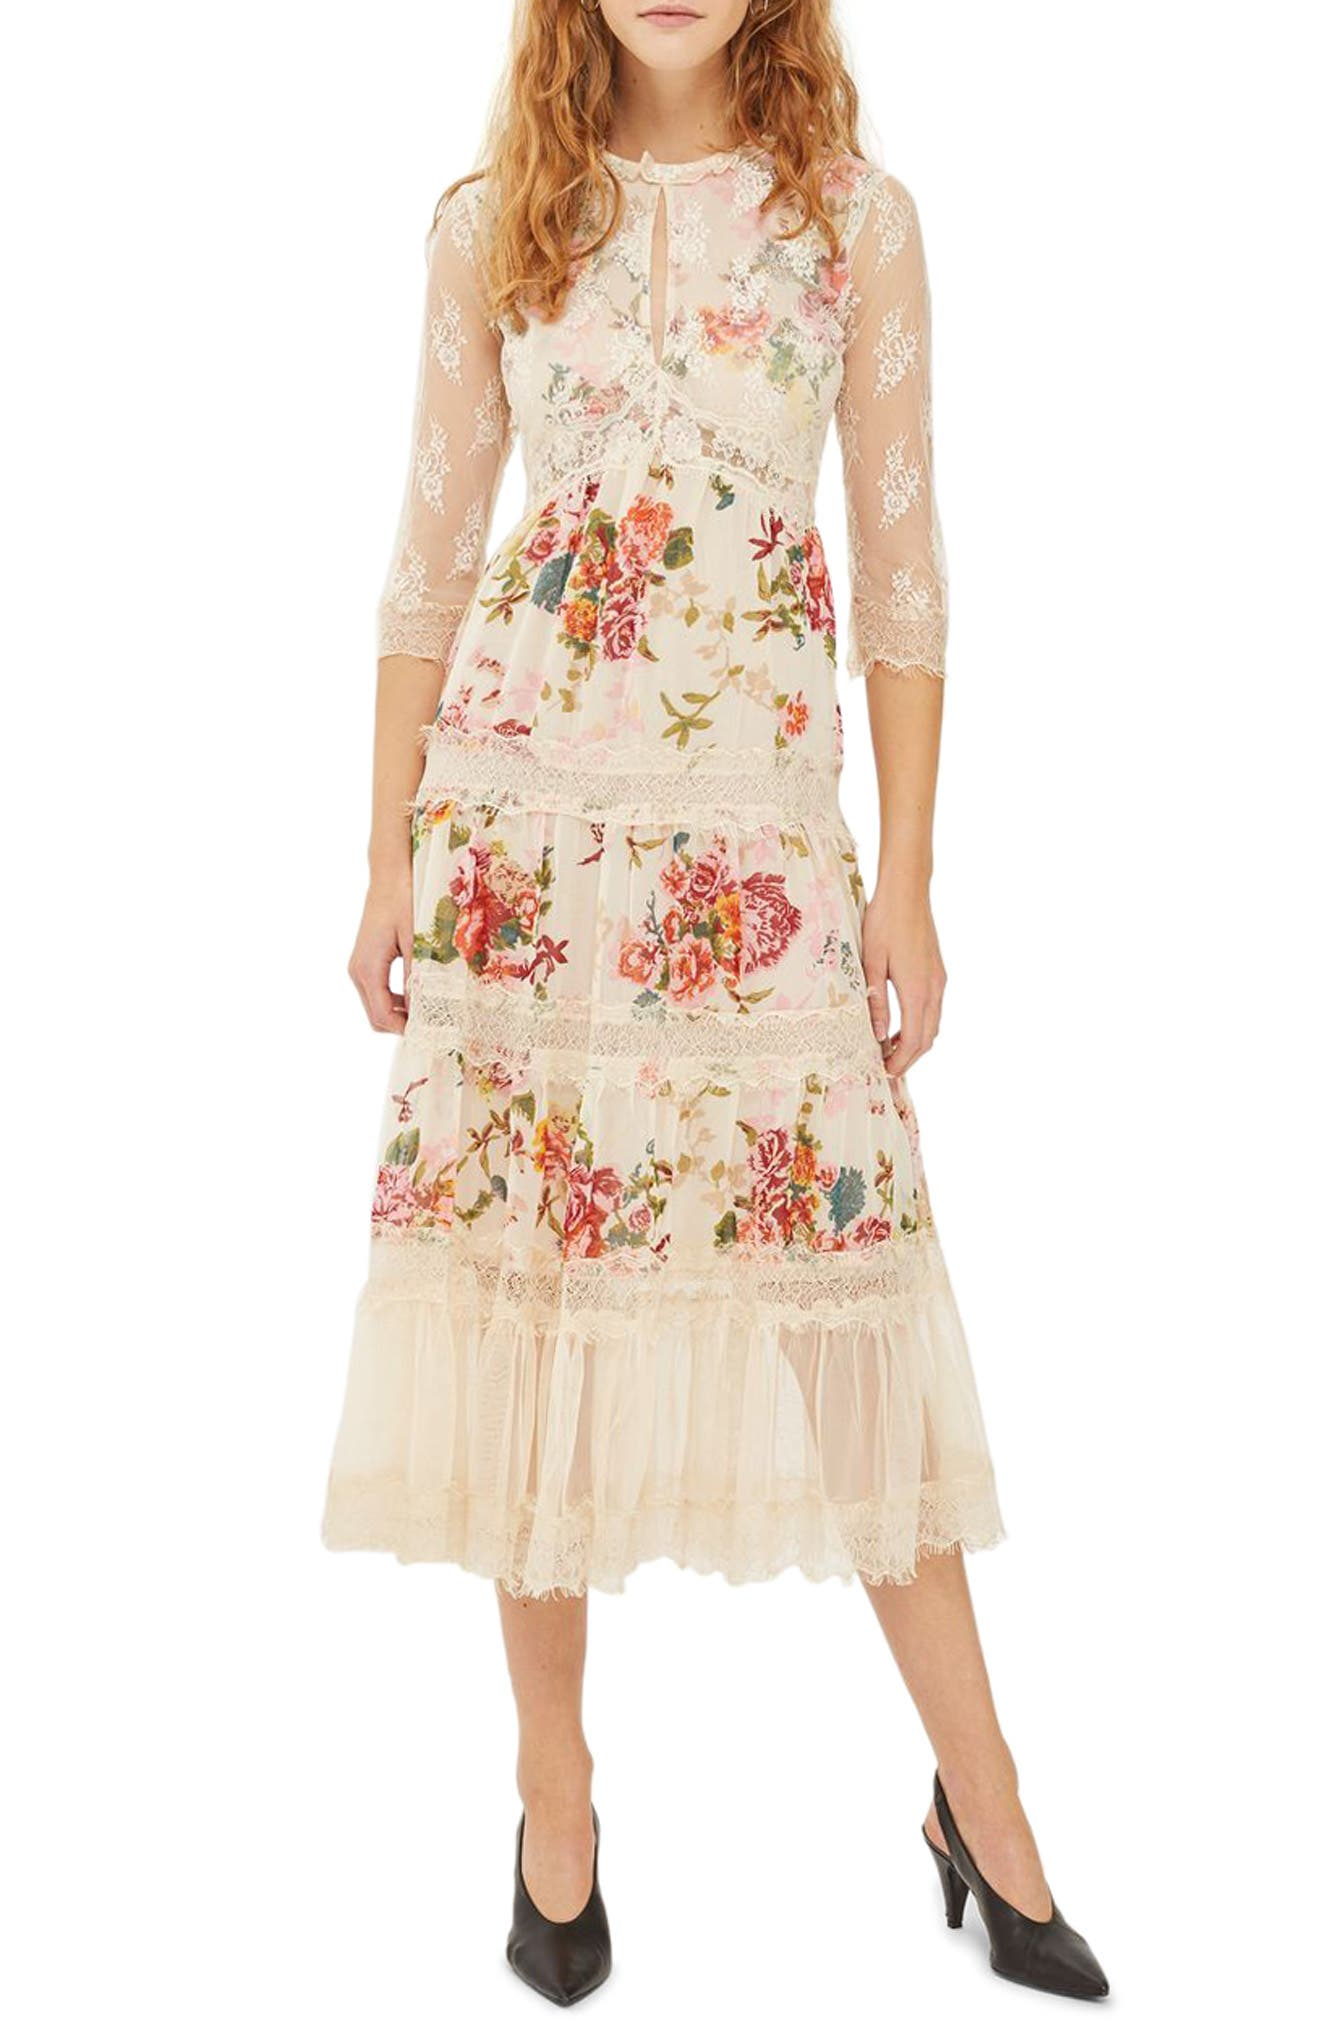 Lace Tier Floral Midi Dress,                             Main thumbnail 1, color,                             Ivory Multi